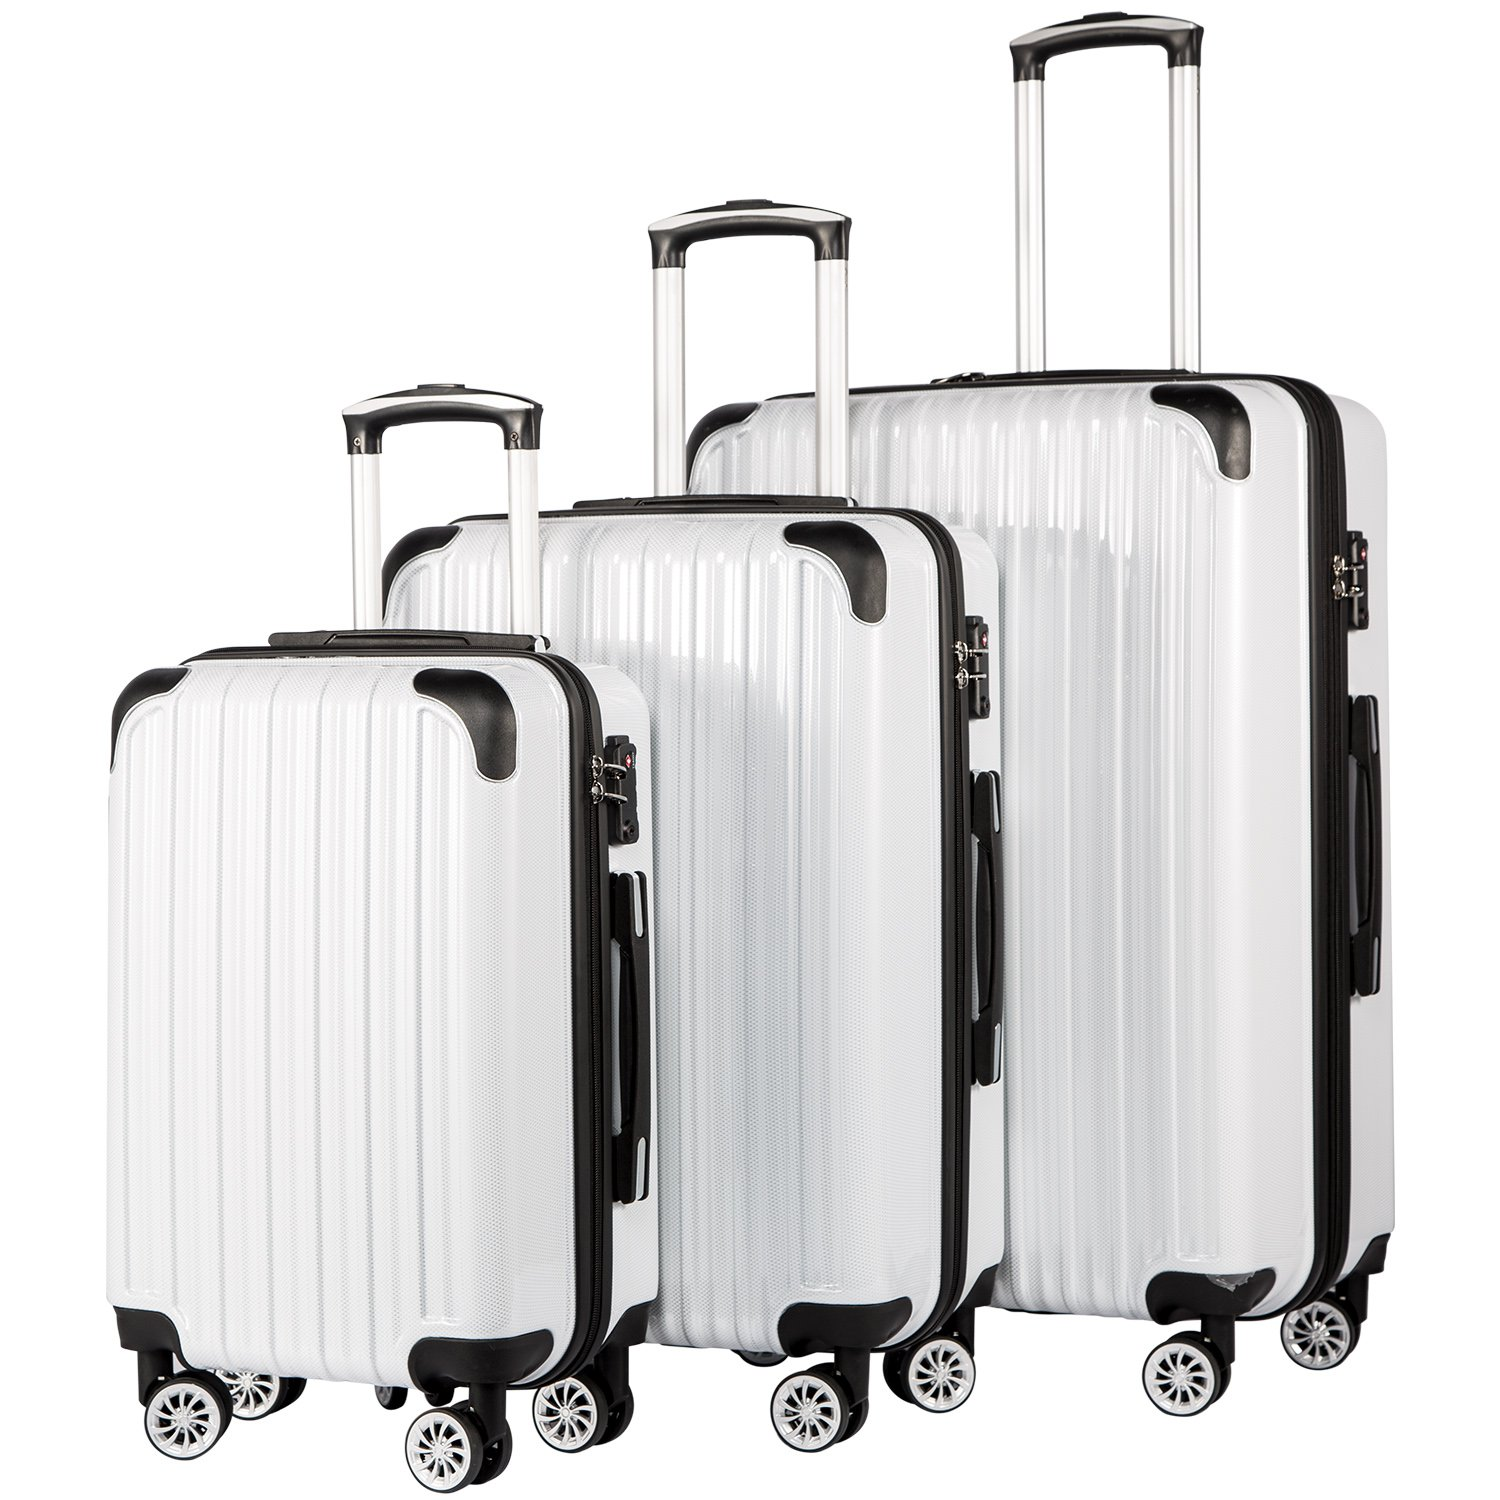 Coolife Luggage Expandable 3 Piece Sets PC+ABS Spinner Suitcase 20 inch 24 inch 28 inch (white grid) by COOLIFE